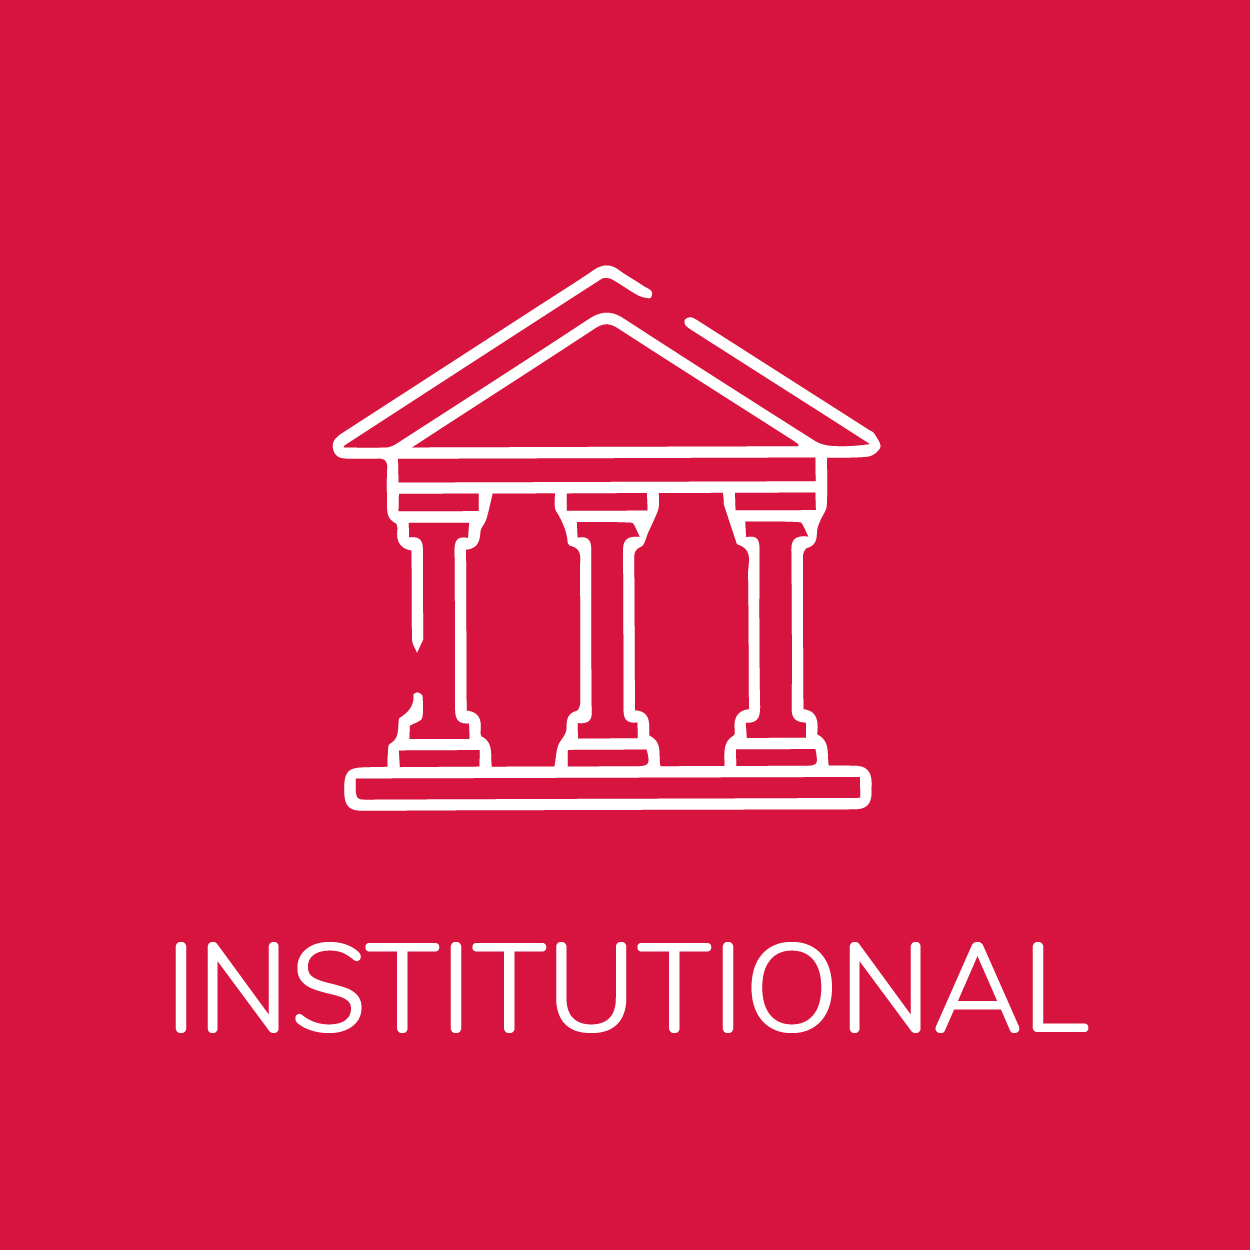 SEE INSTITUTIONAL PROJECTS -